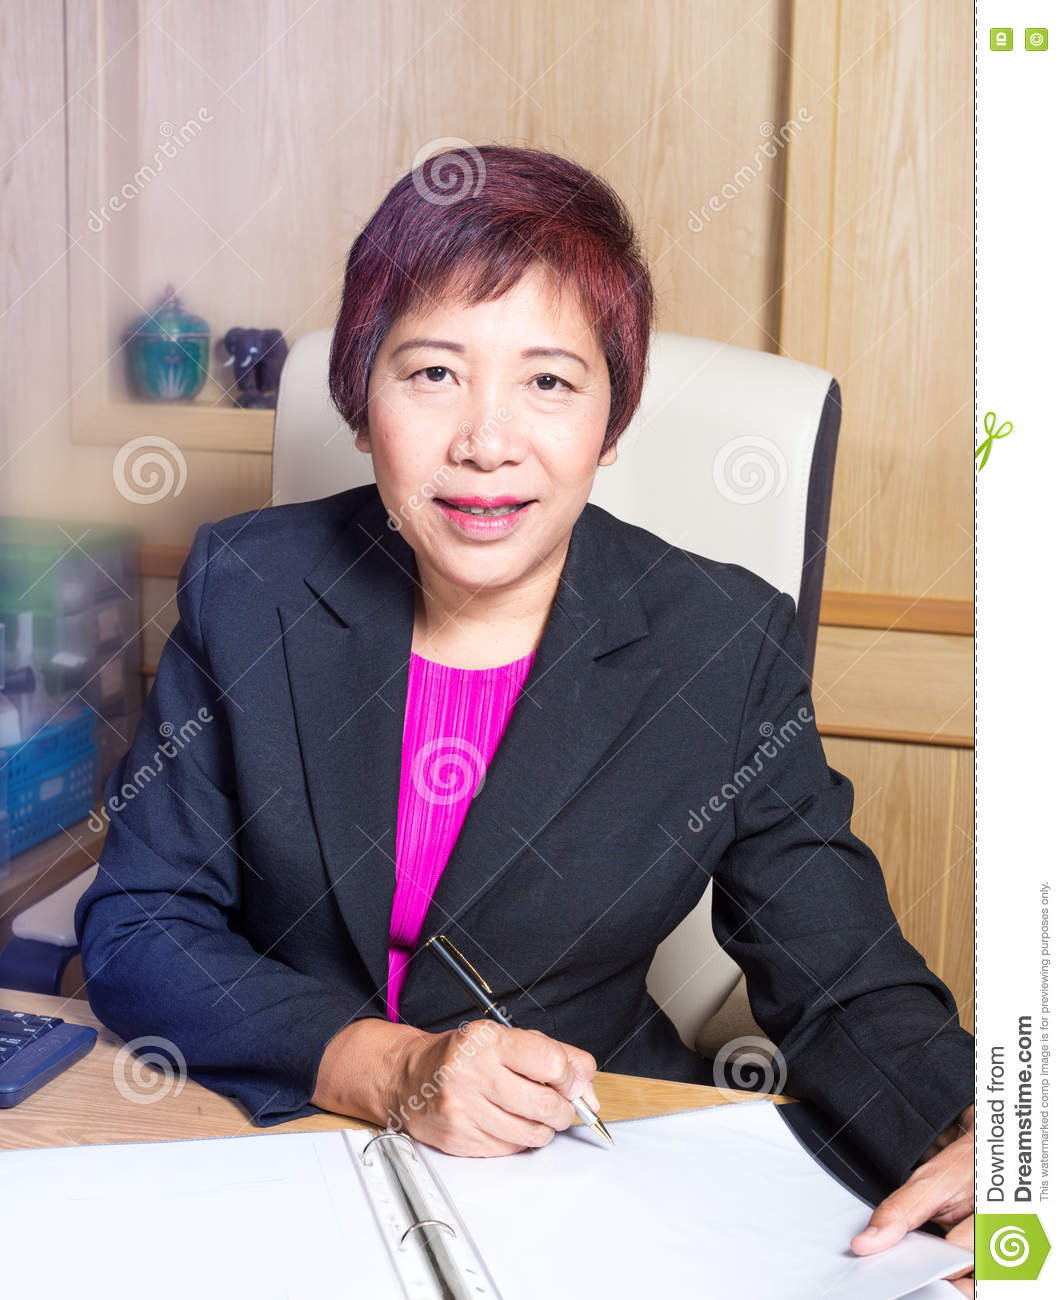 Elegant Asian Business Woman Asian Manager Senior Age Siting On Desk Sign